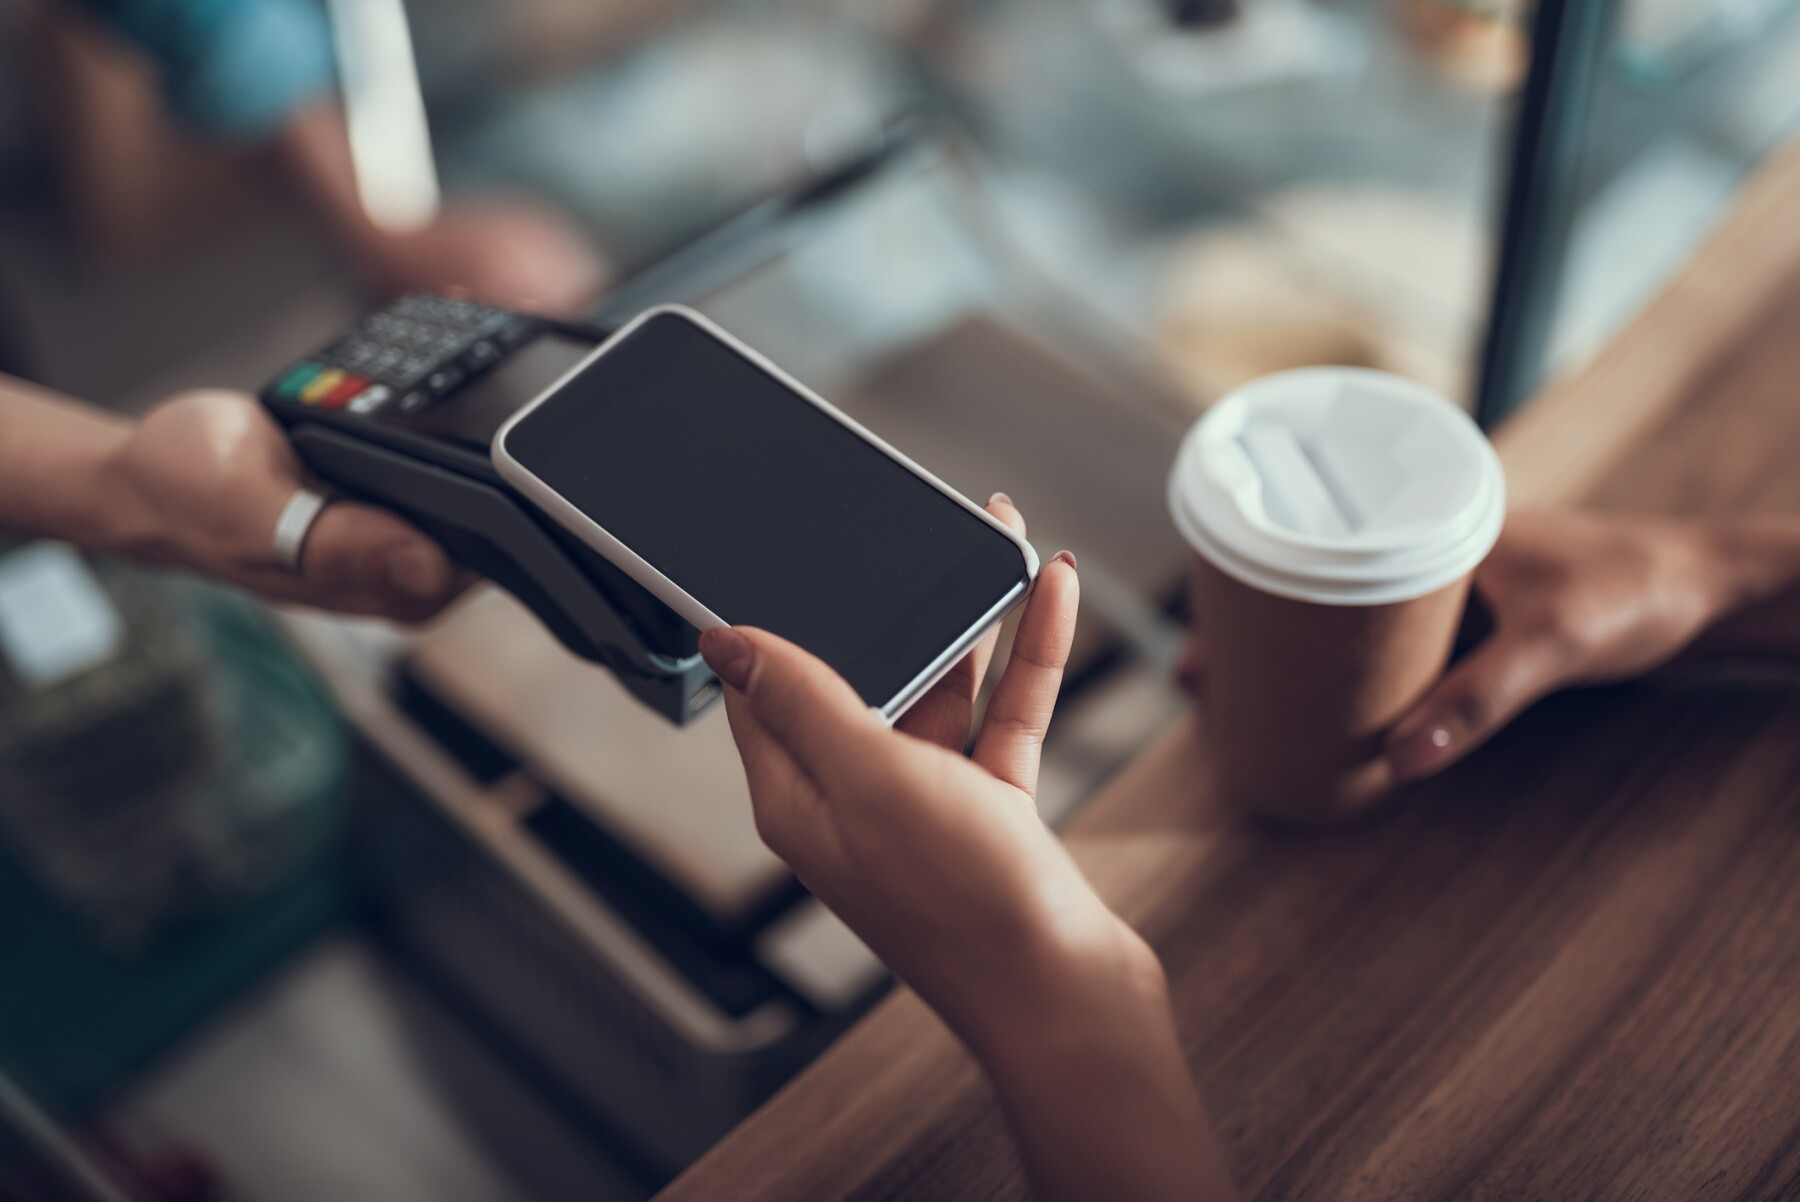 Hand of young lady placing smartphone on credit card payment machine